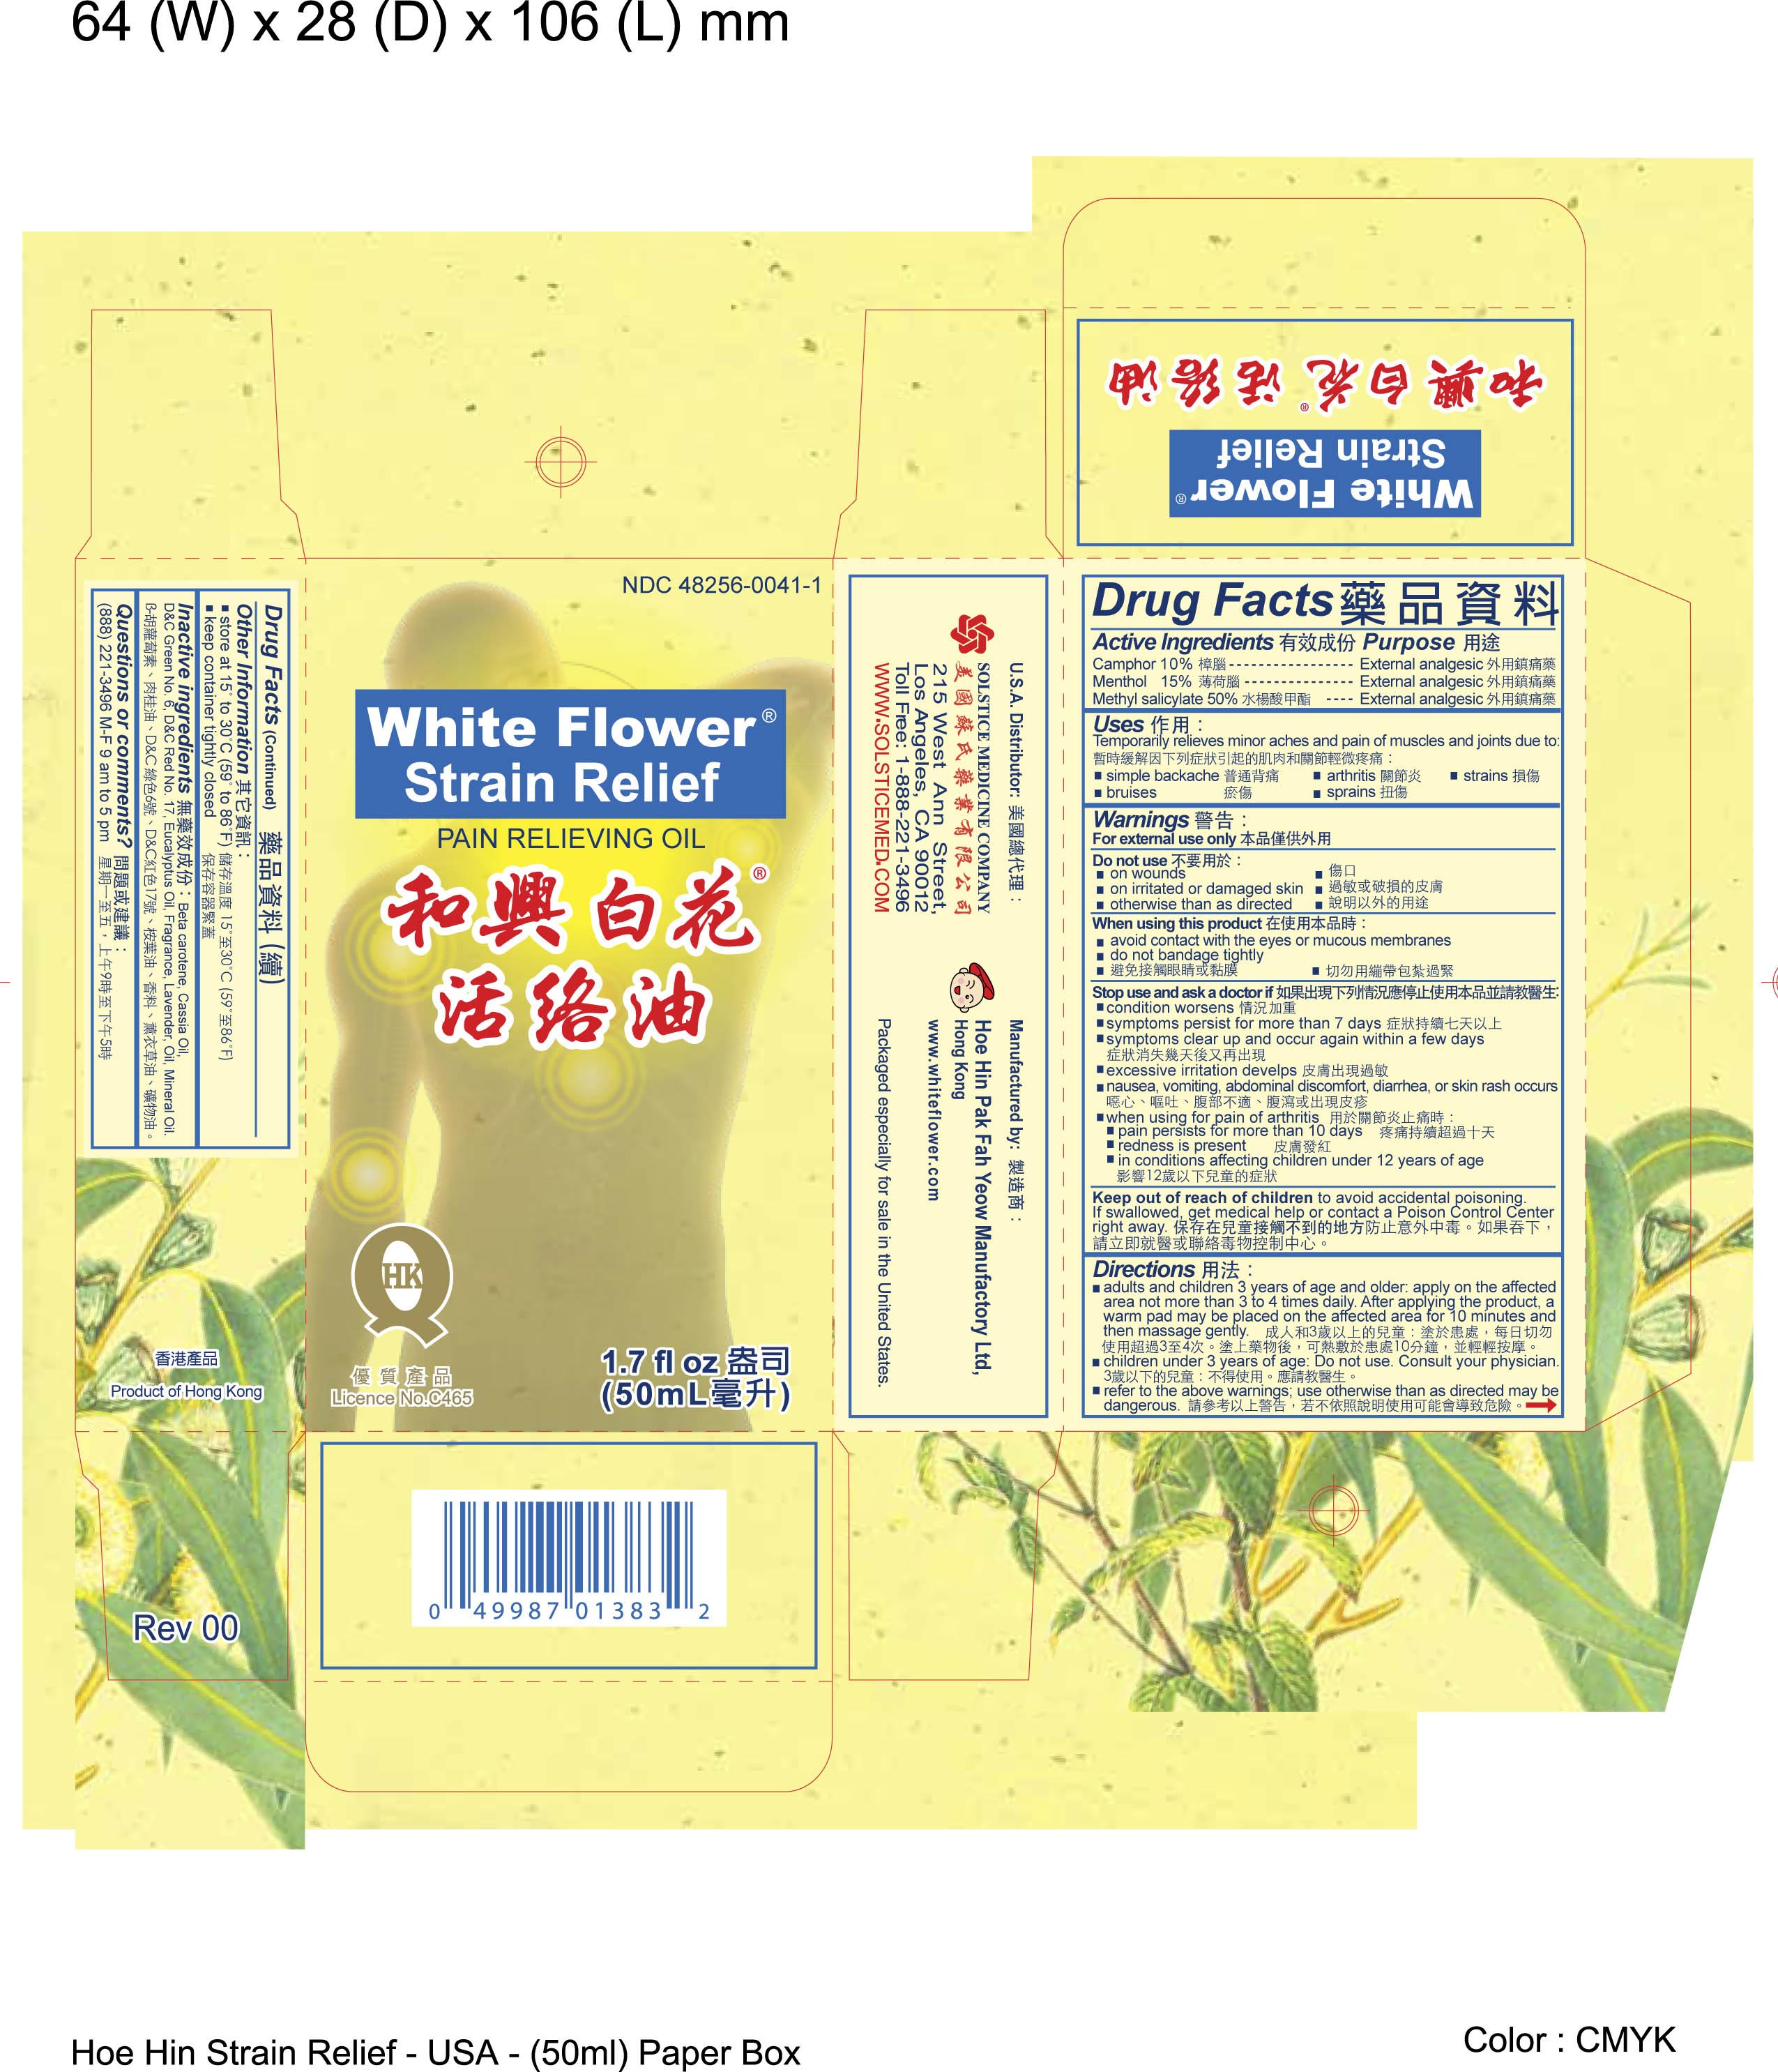 White Flower Strain Relief Information Side Effects Warnings And